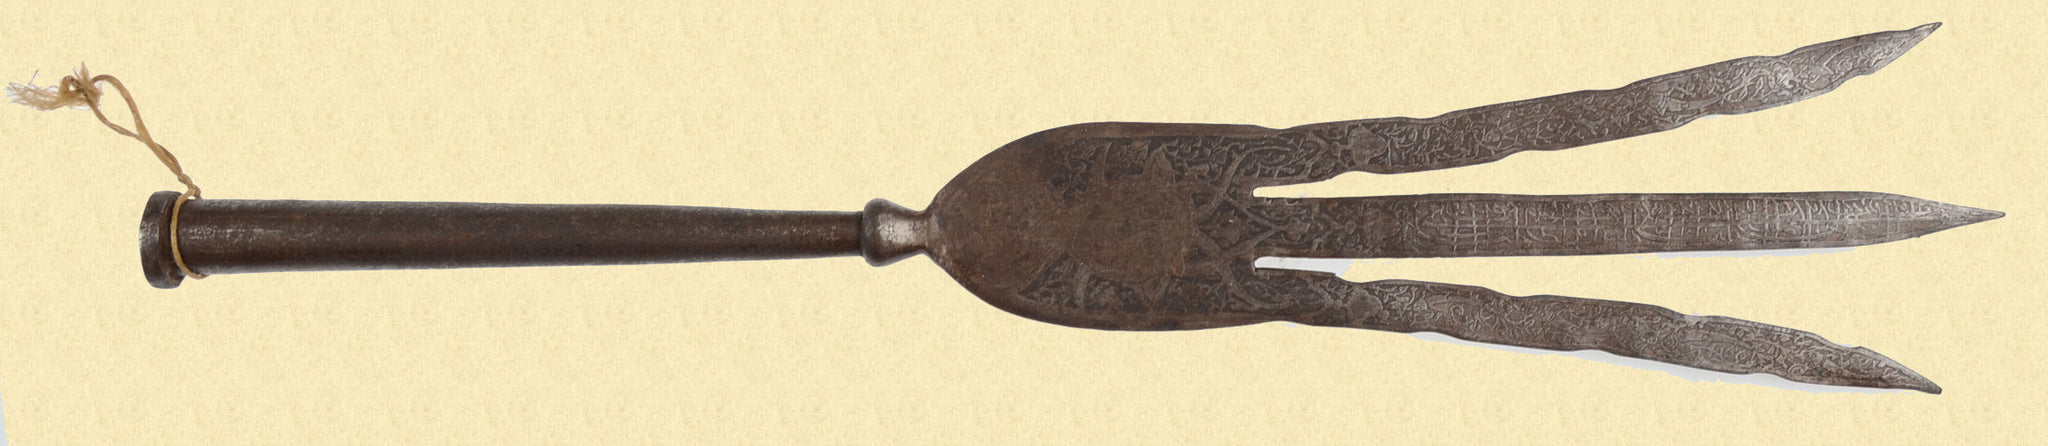 INDO-PERSIAN SPEAR TIP